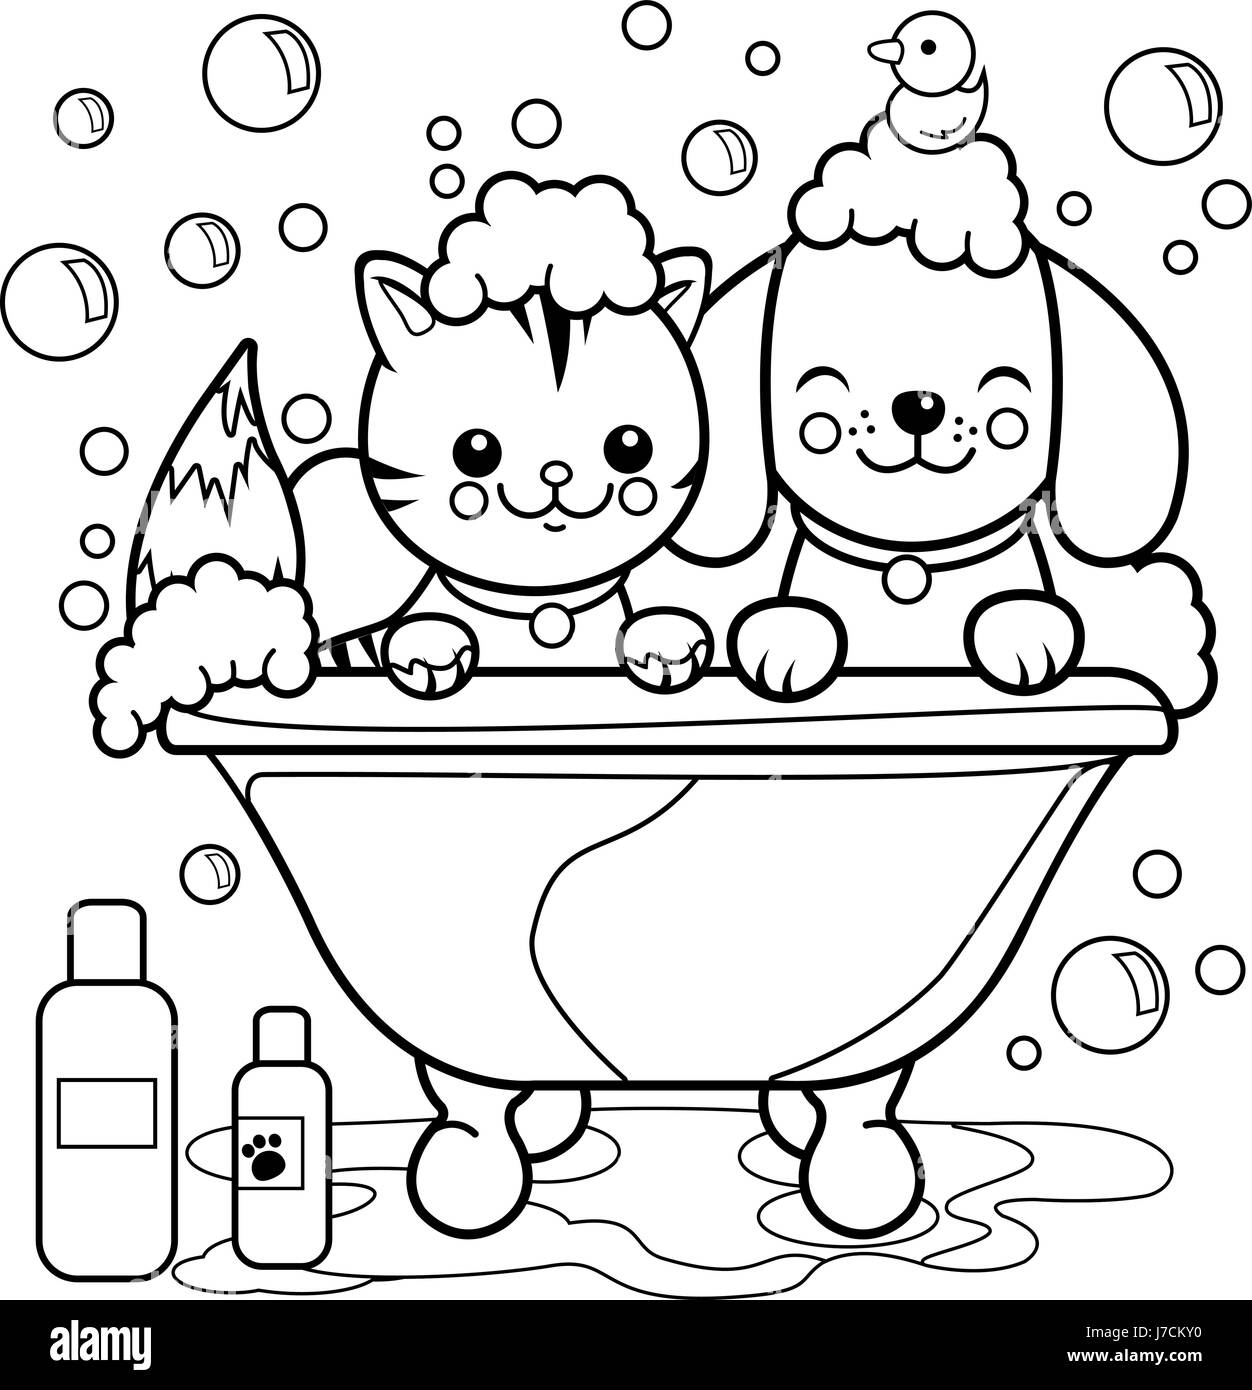 Dog and cat taking a bath. Coloring book page Stock Vector ...